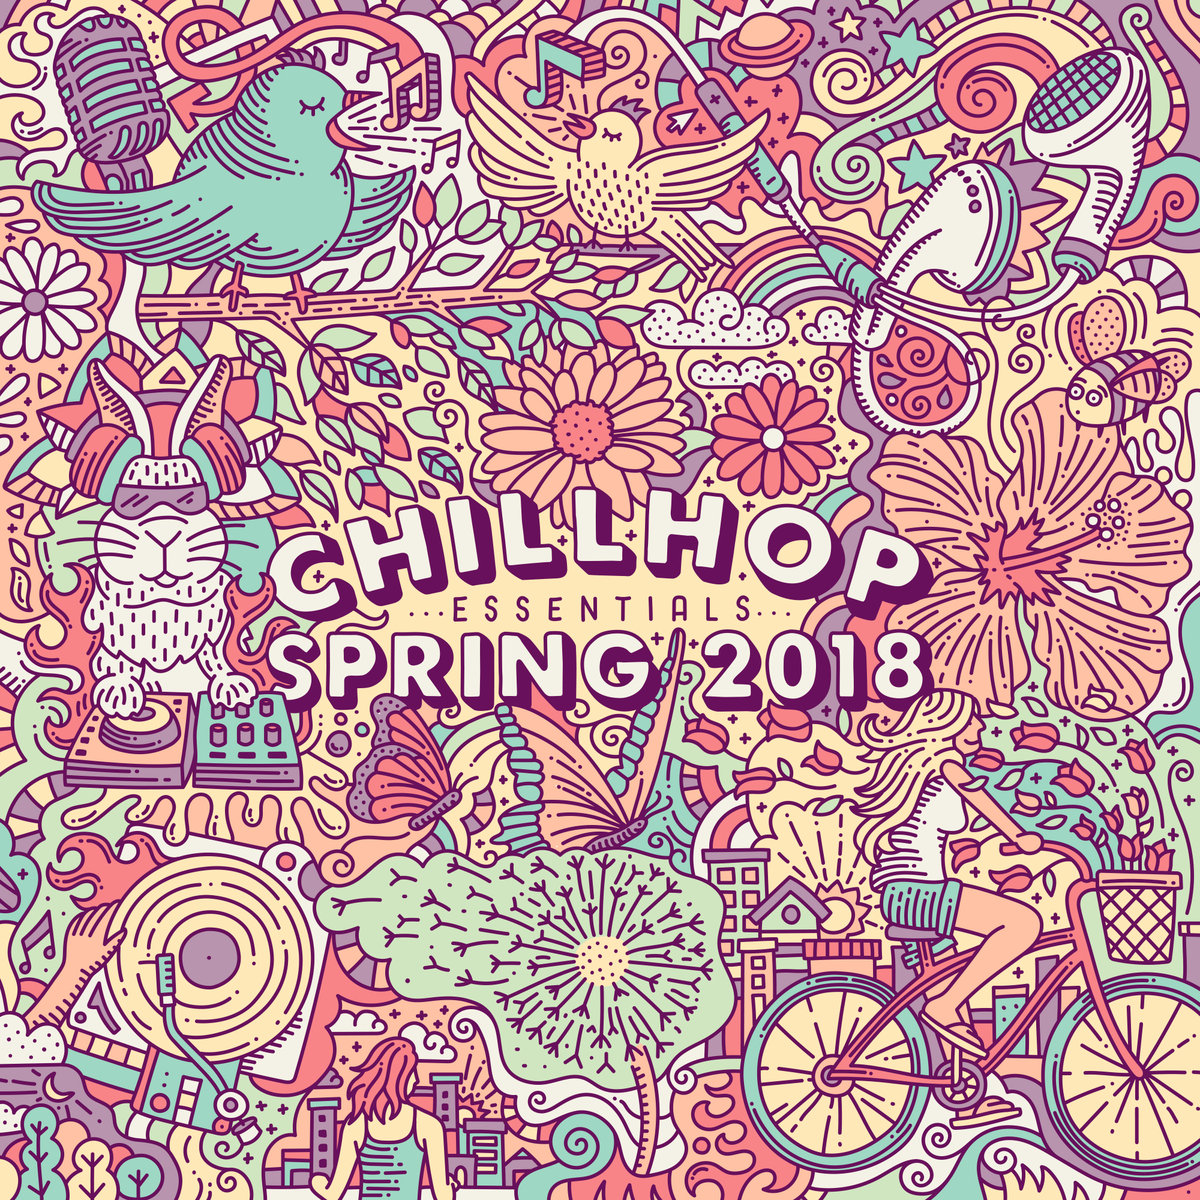 Chillhop Essentials Spring 2018 | Musikalischer Frühling im Full Album Stream